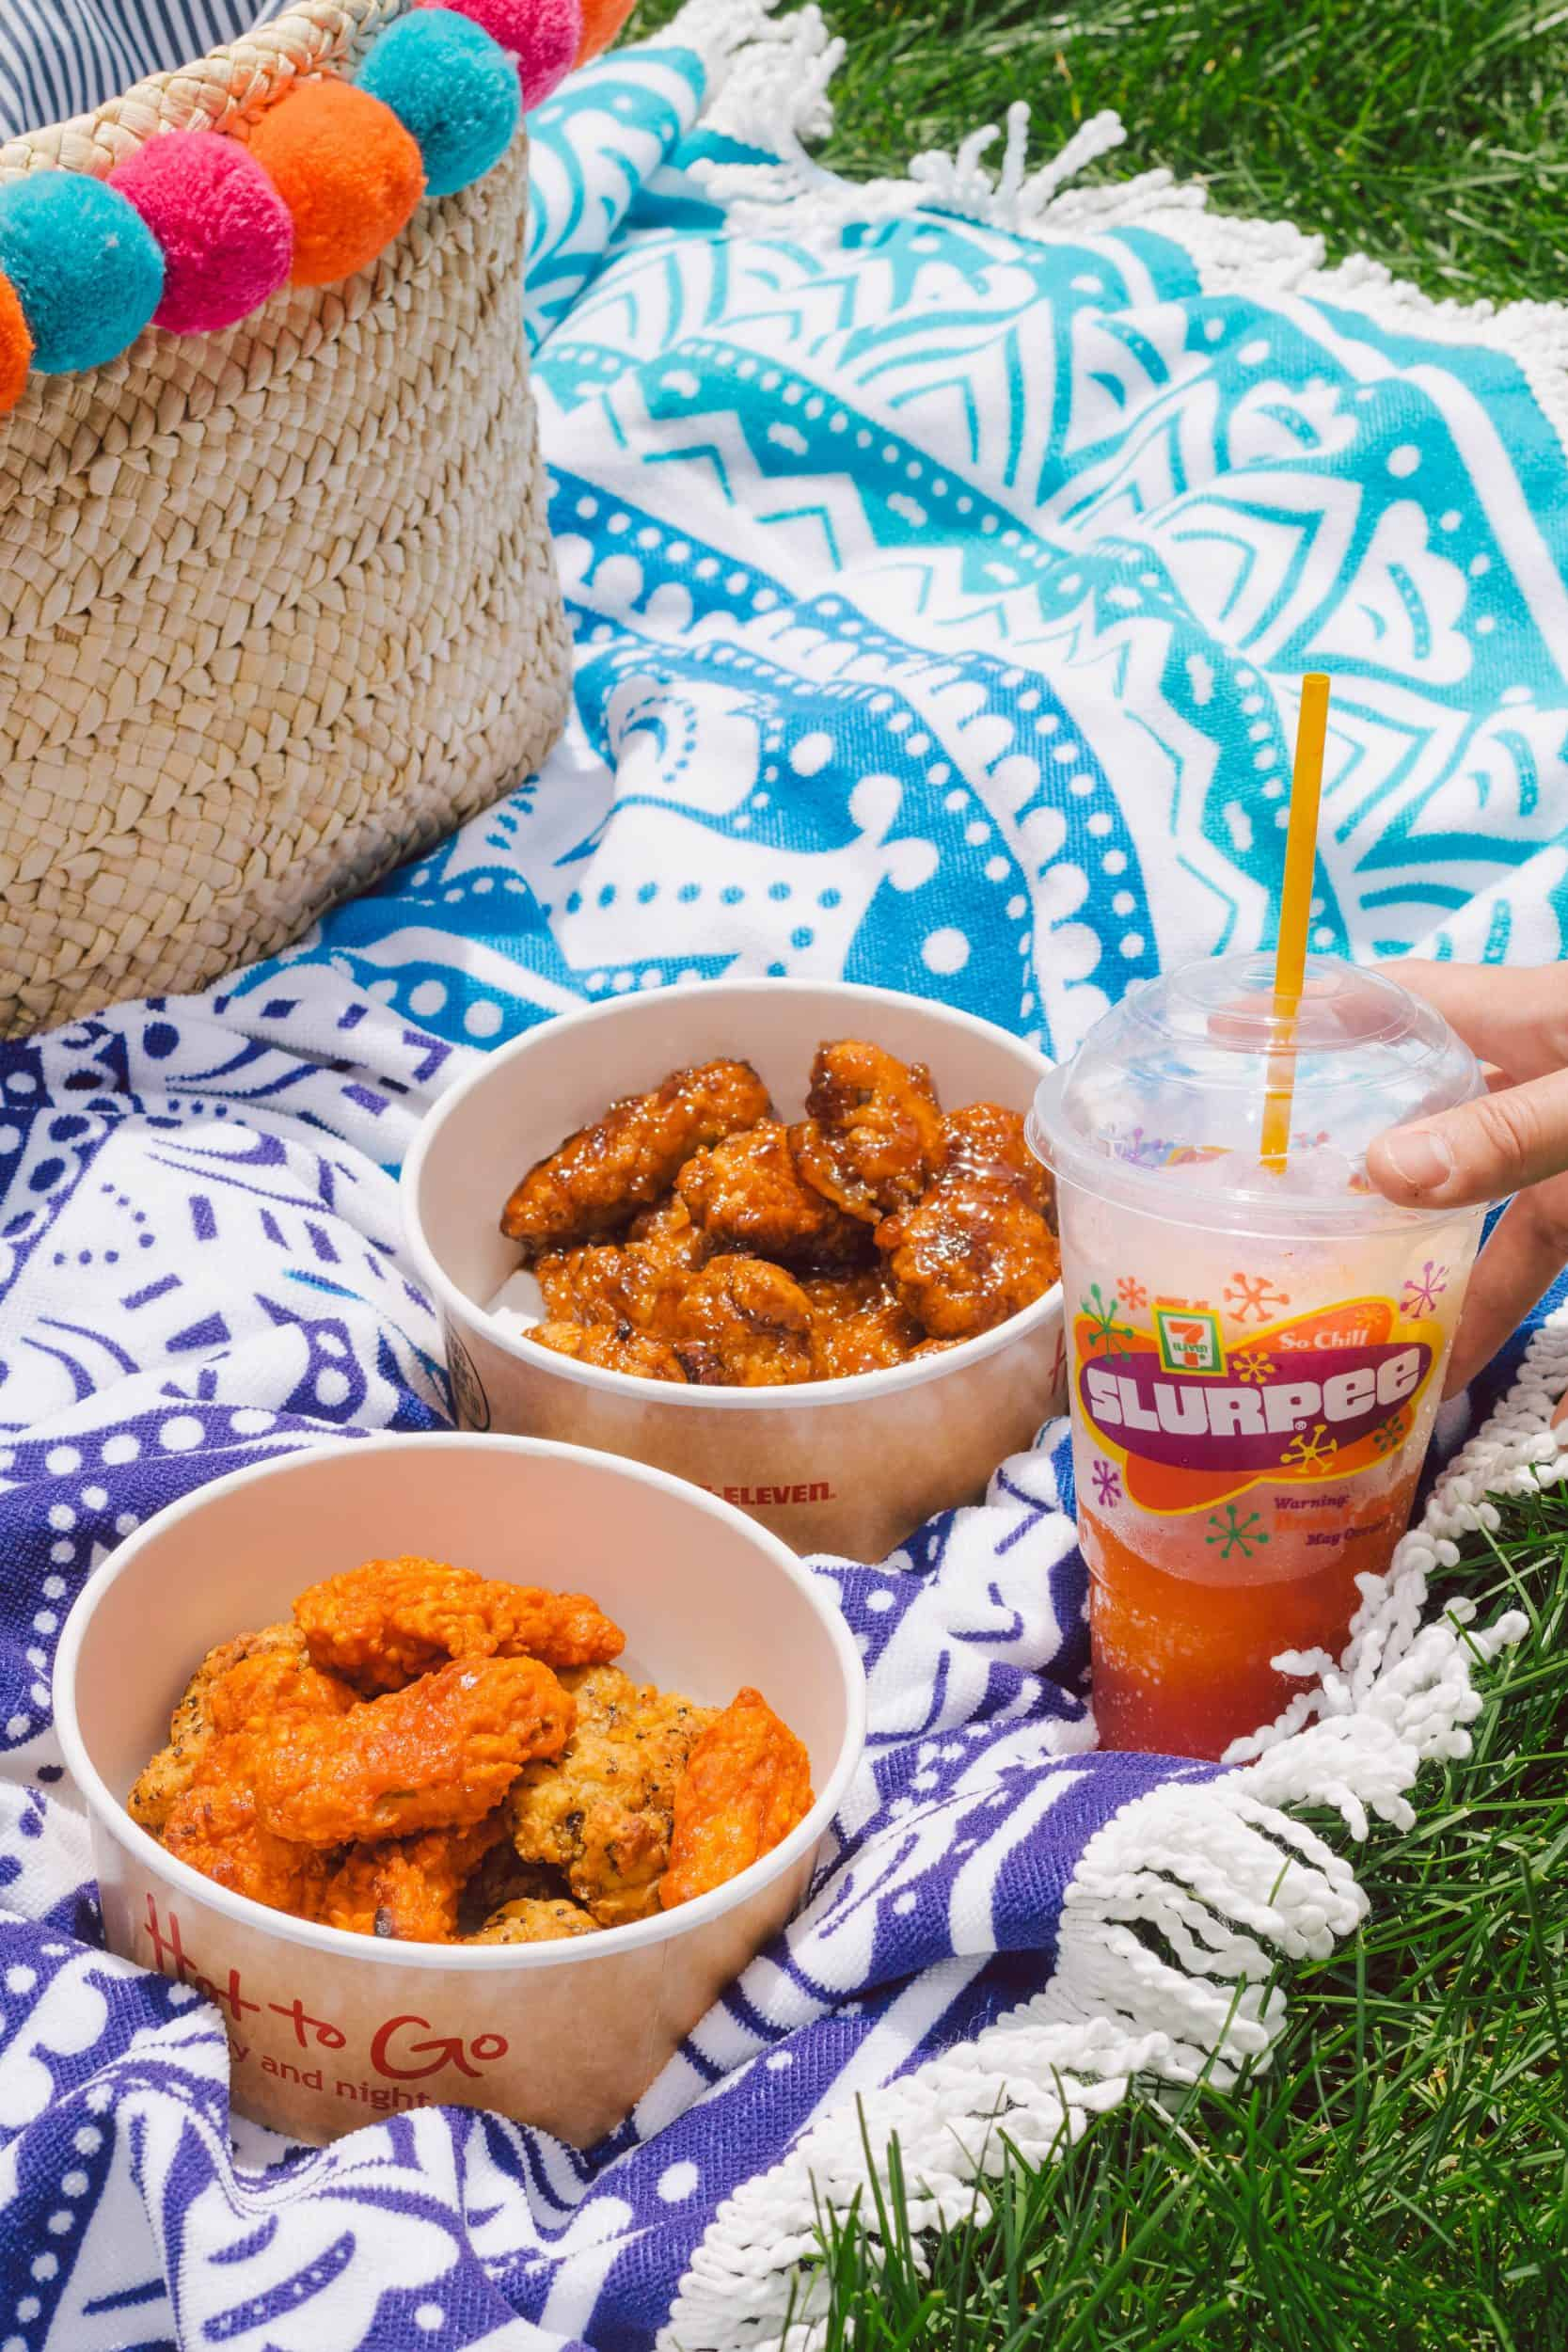 Chicken wings and Slurpee at 7-Eleven Canada